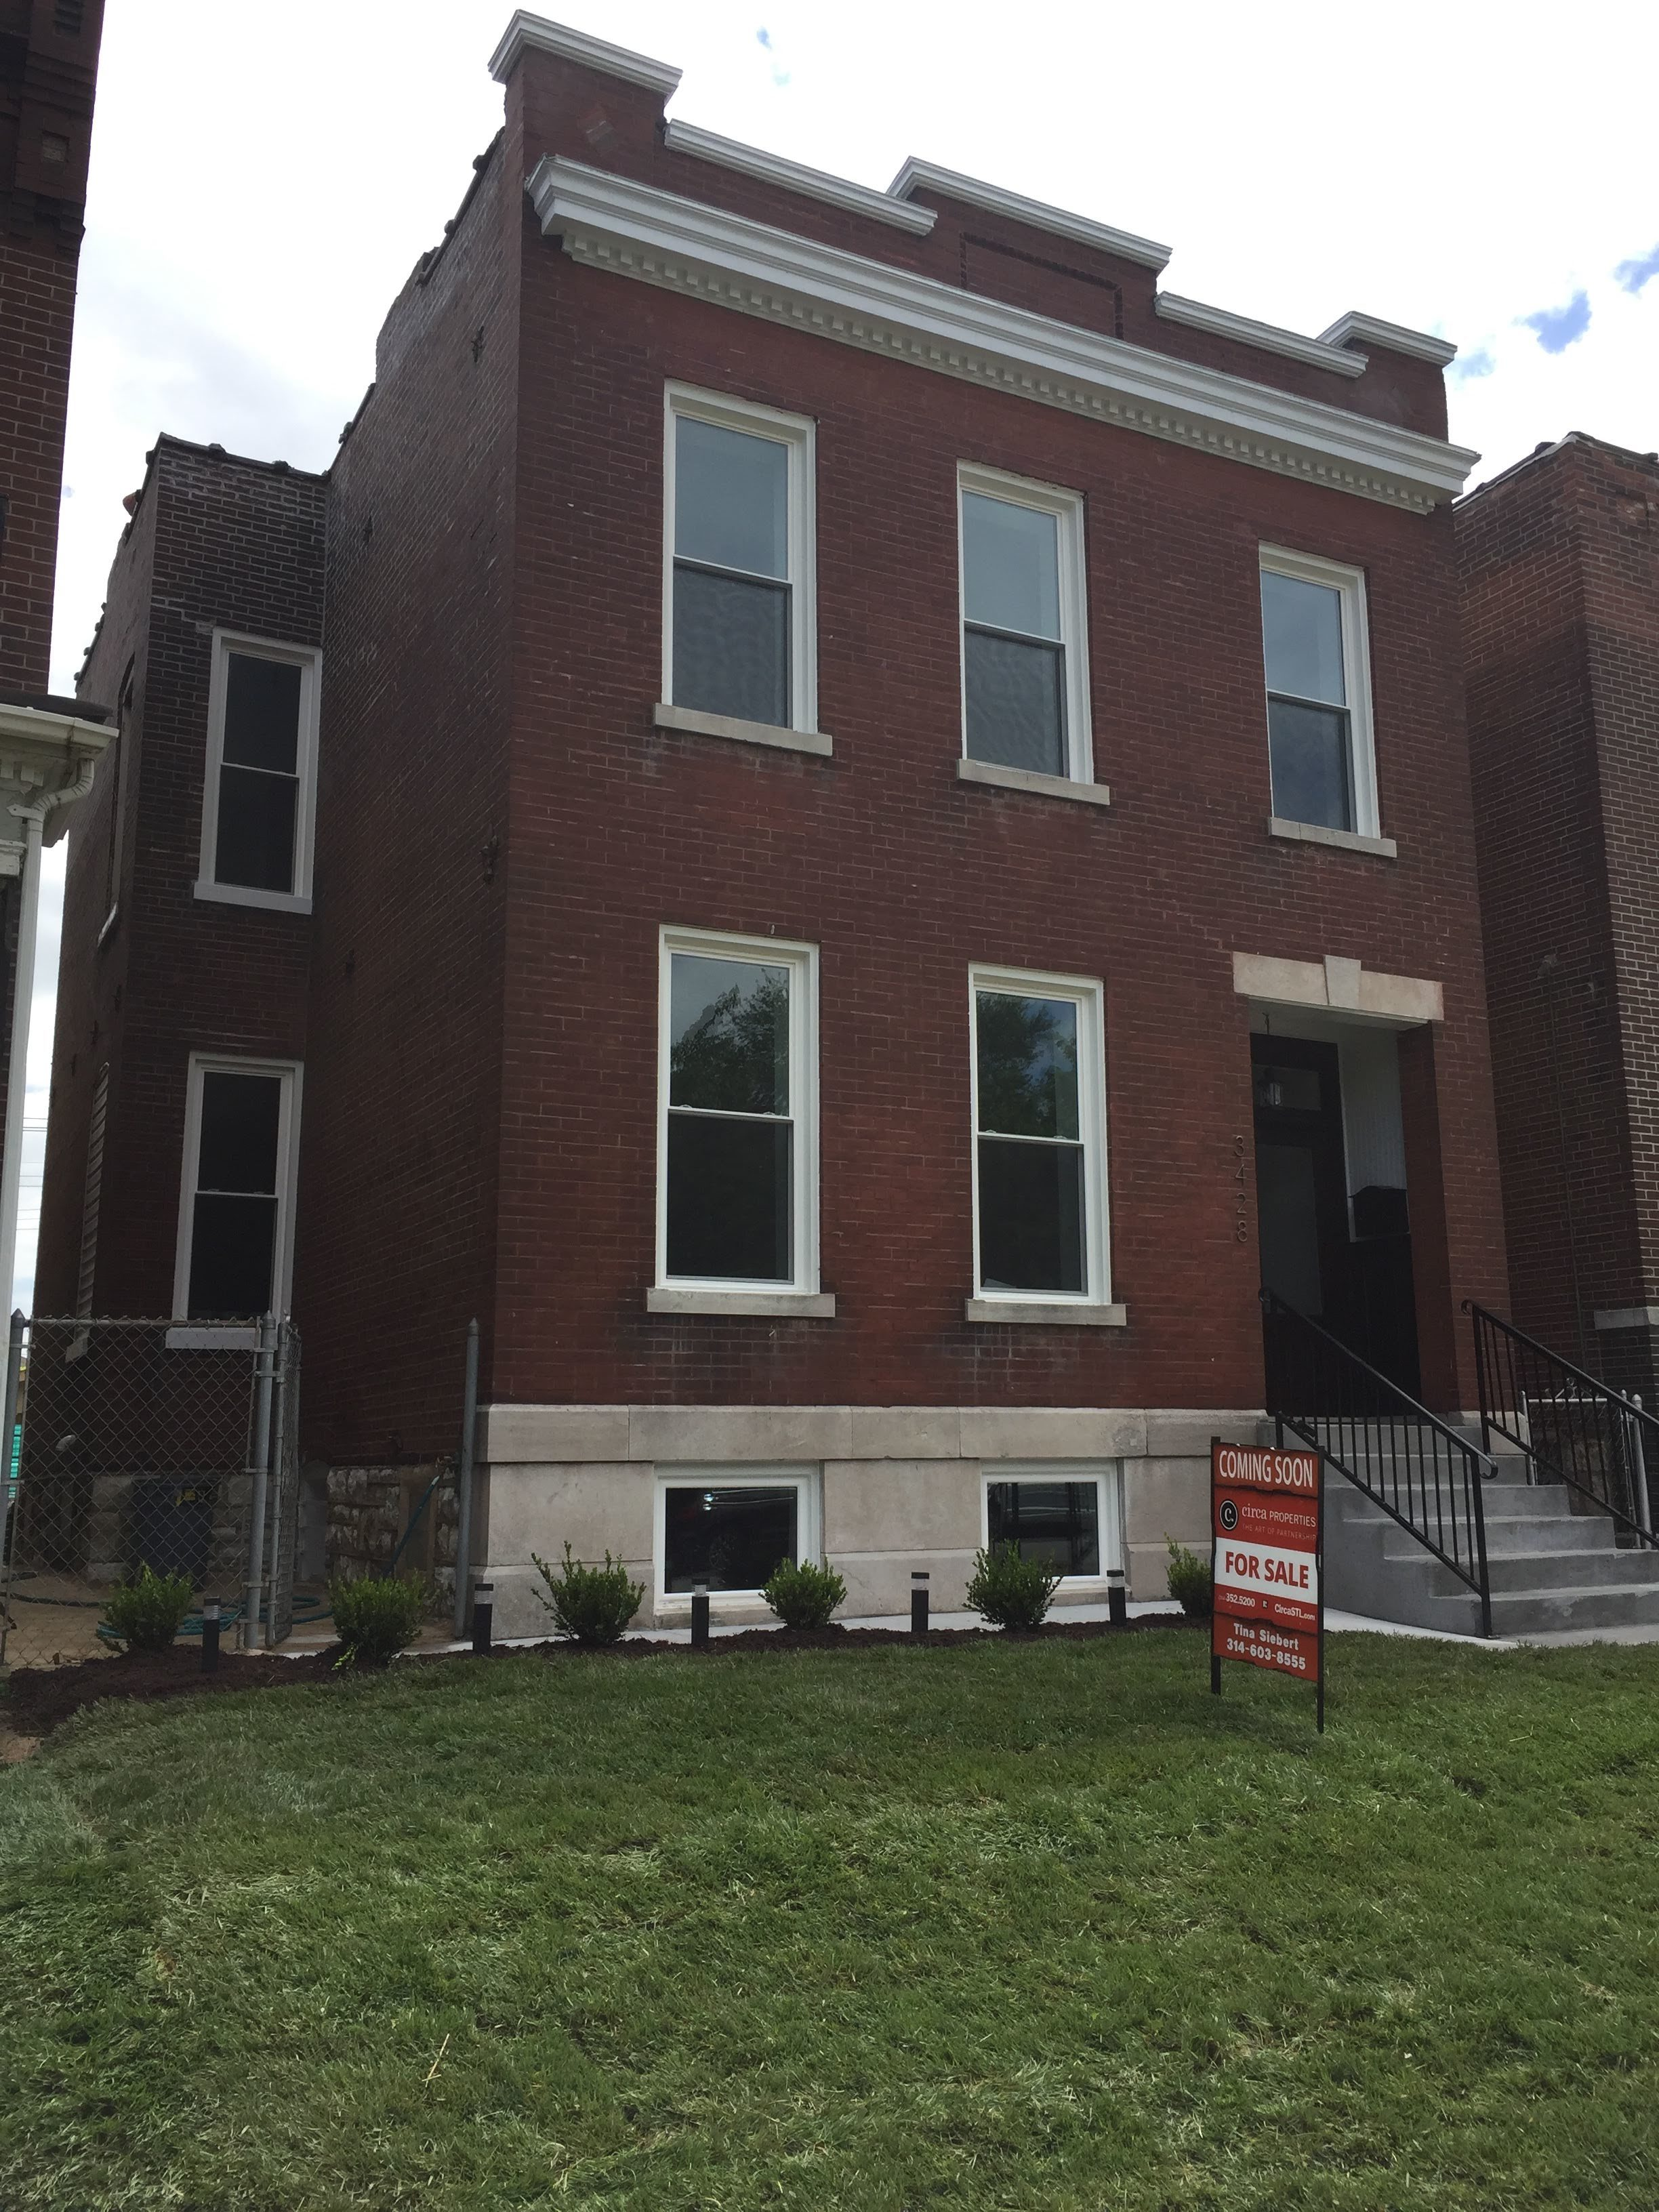 3428 Mckean Ave St Louis MO 63118 – 3 bdrms/2 ba completely renovated